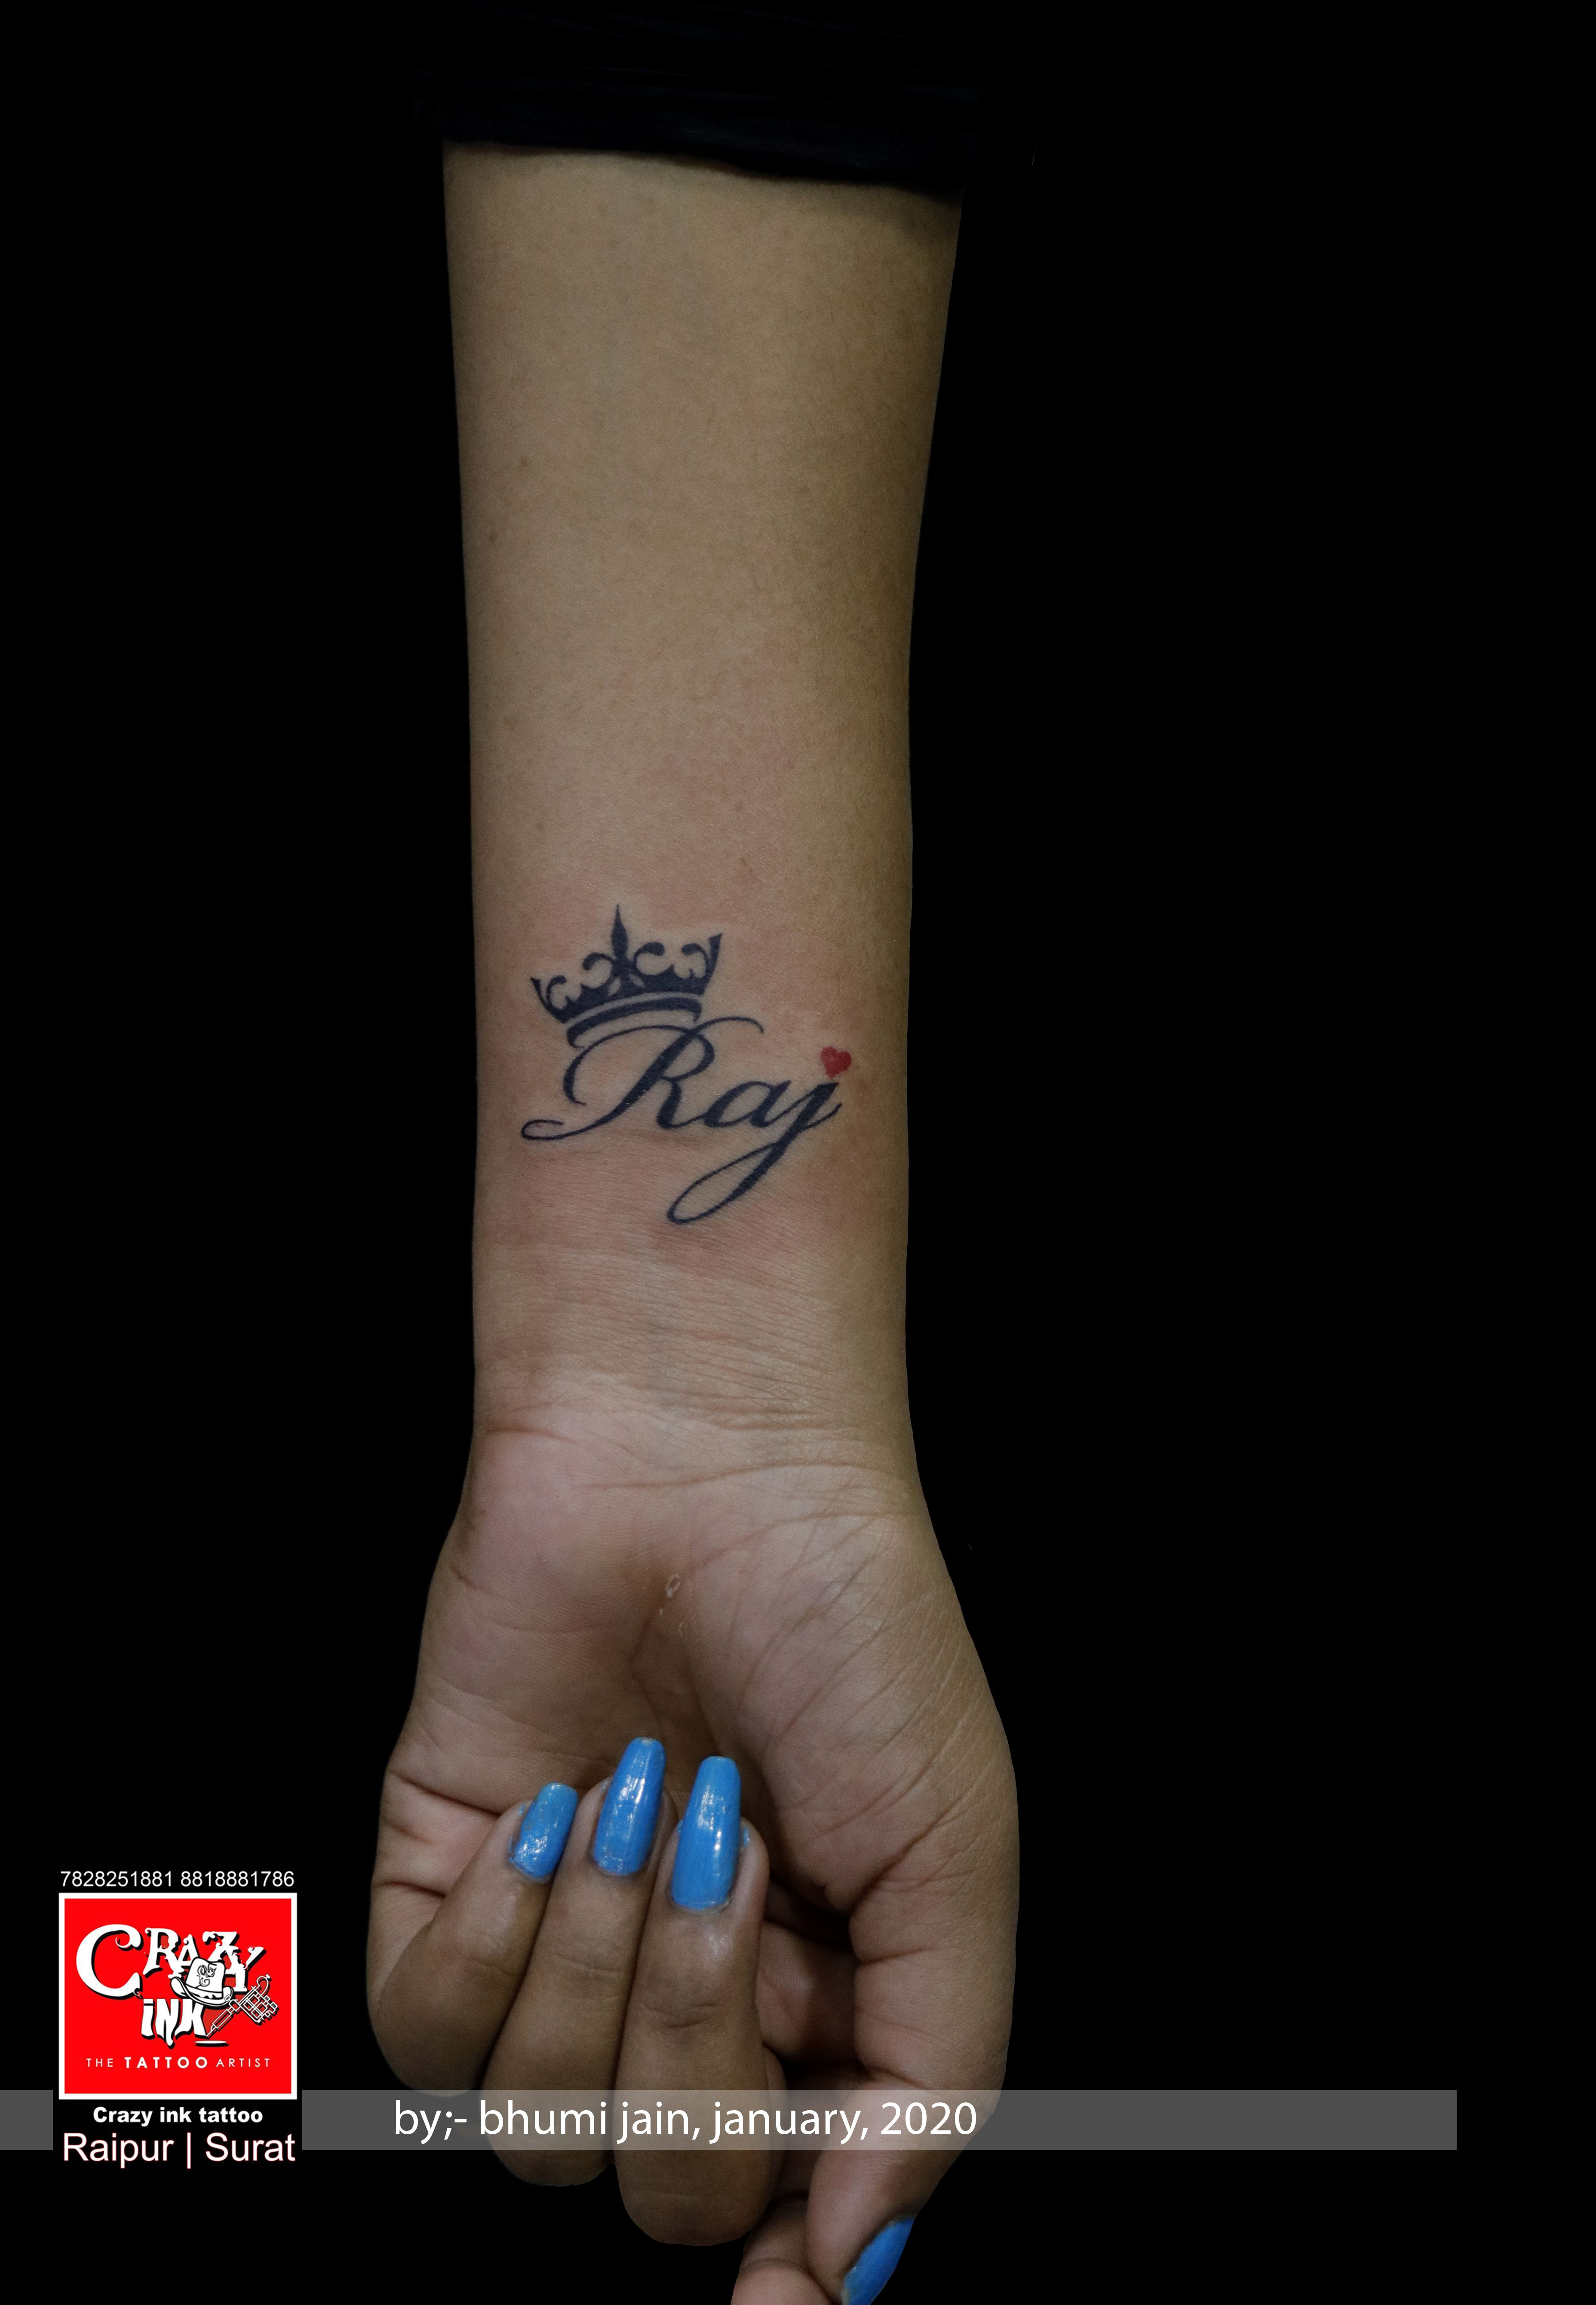 Crazy Ink Tattoo In 2020 Name Tattoos On Wrist Name Tattoo Designs Name Tattoo On Hand